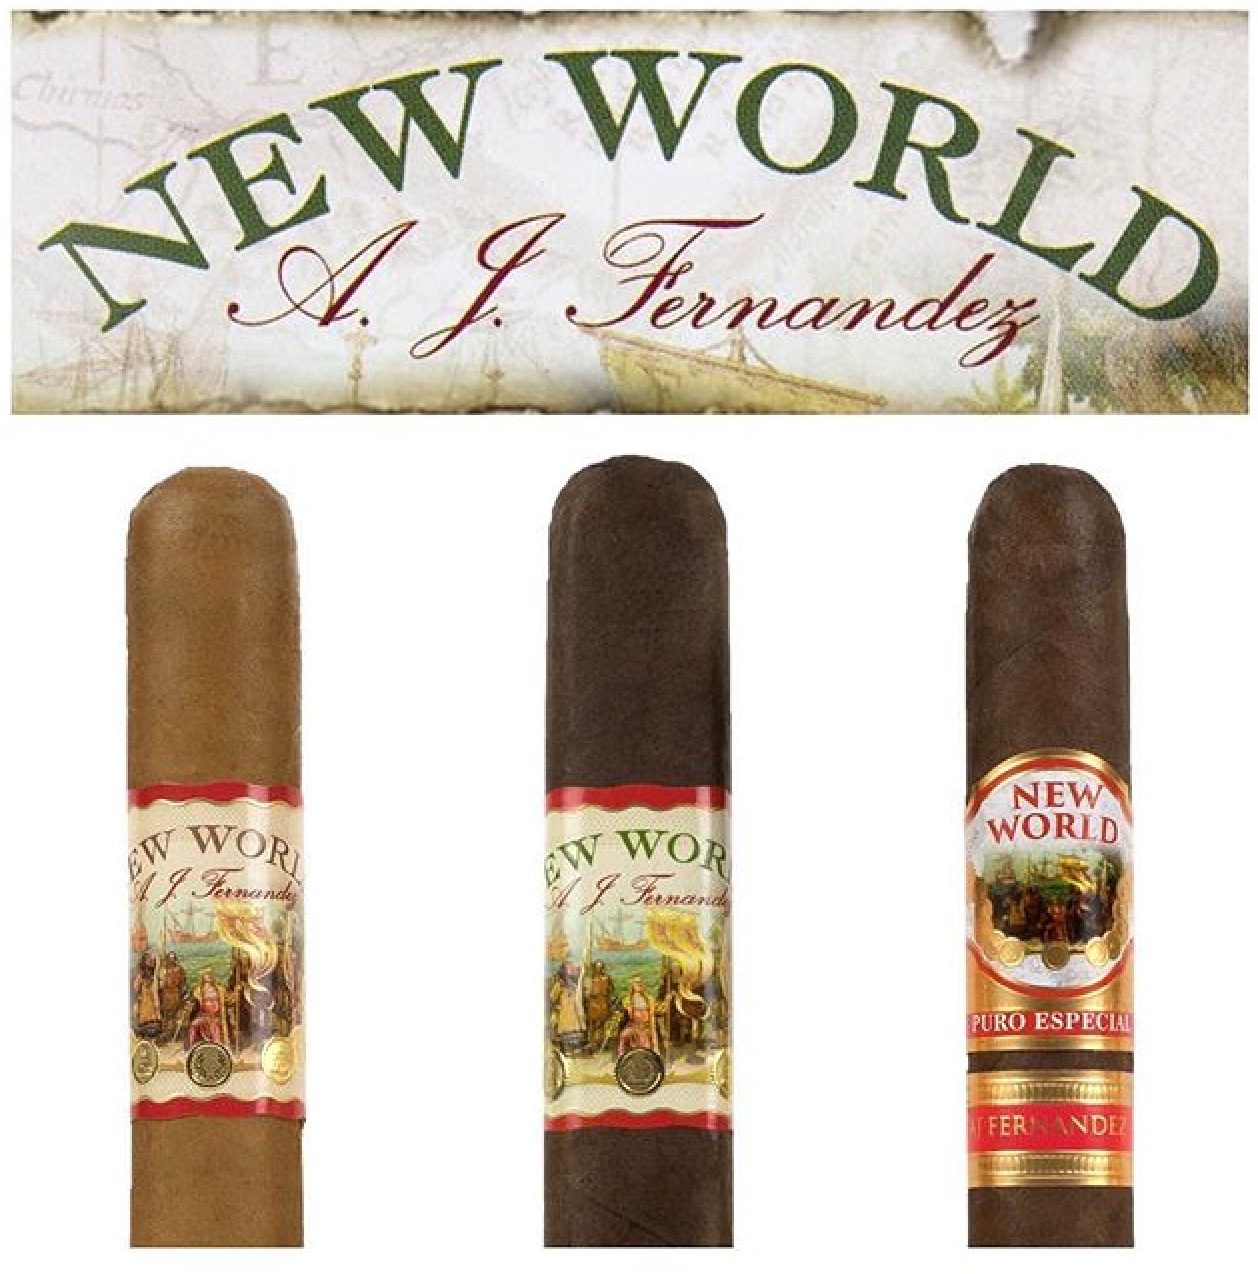 New World Connecticut Corona Gorda - 5 Pack image